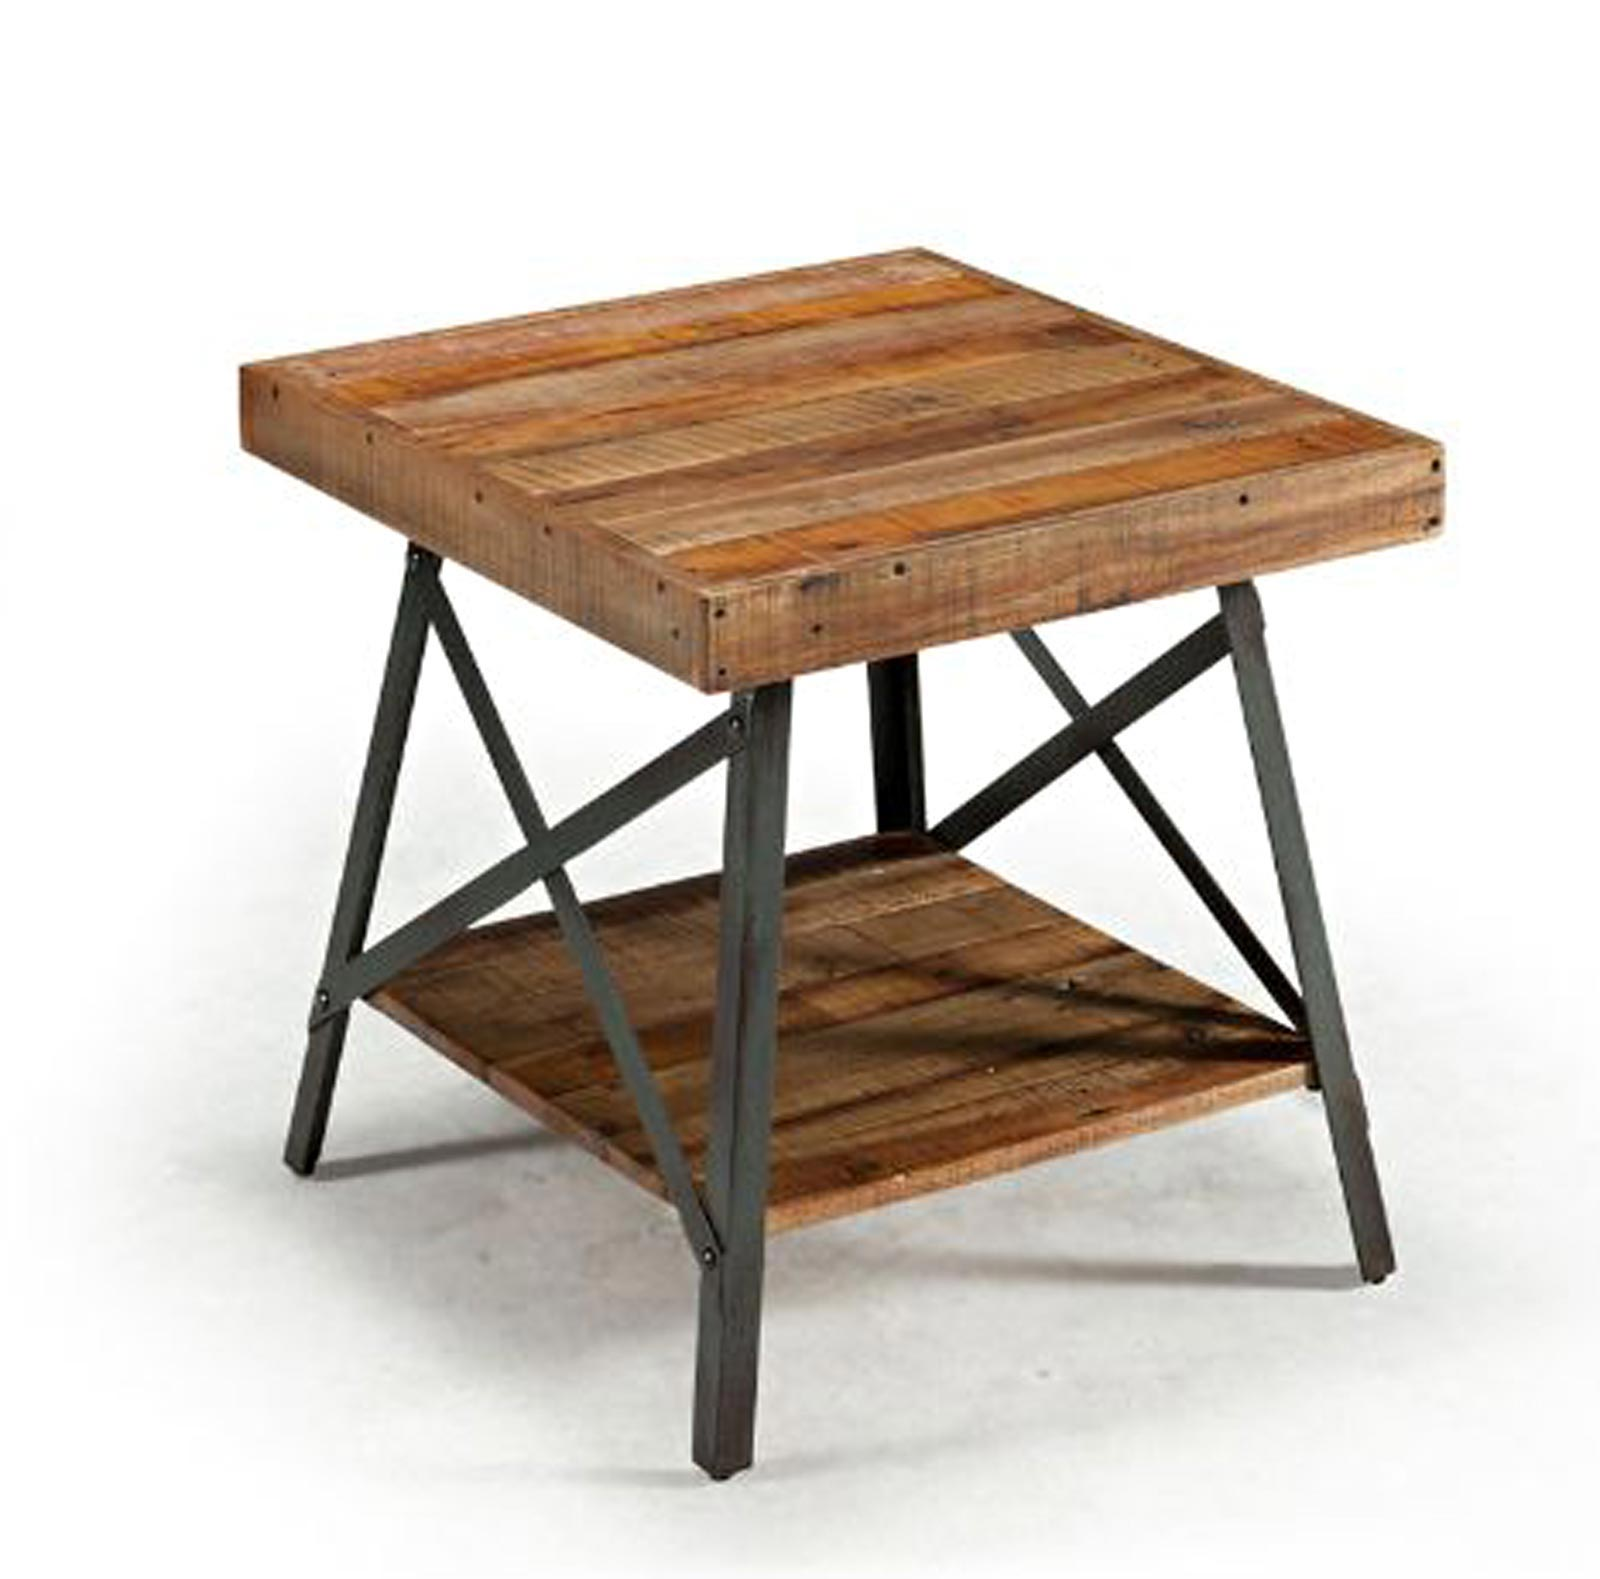 furniture beauty home with reclaimed wood side table restoration hardware nesting tables entry rustic accent pine end large coffee metal patio and chairs trestle bench seat extra